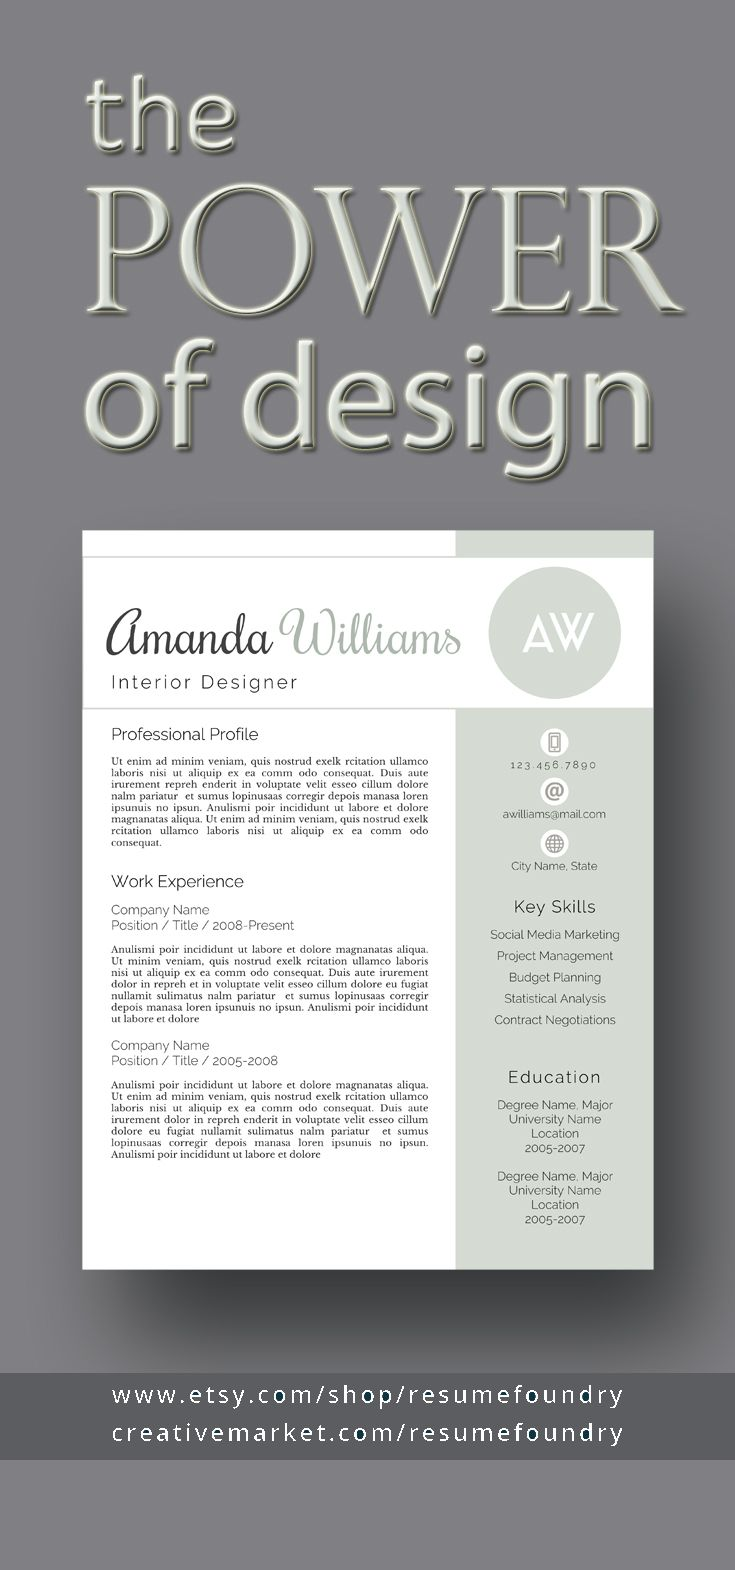 Resume template 5 out of 5 stars this is a